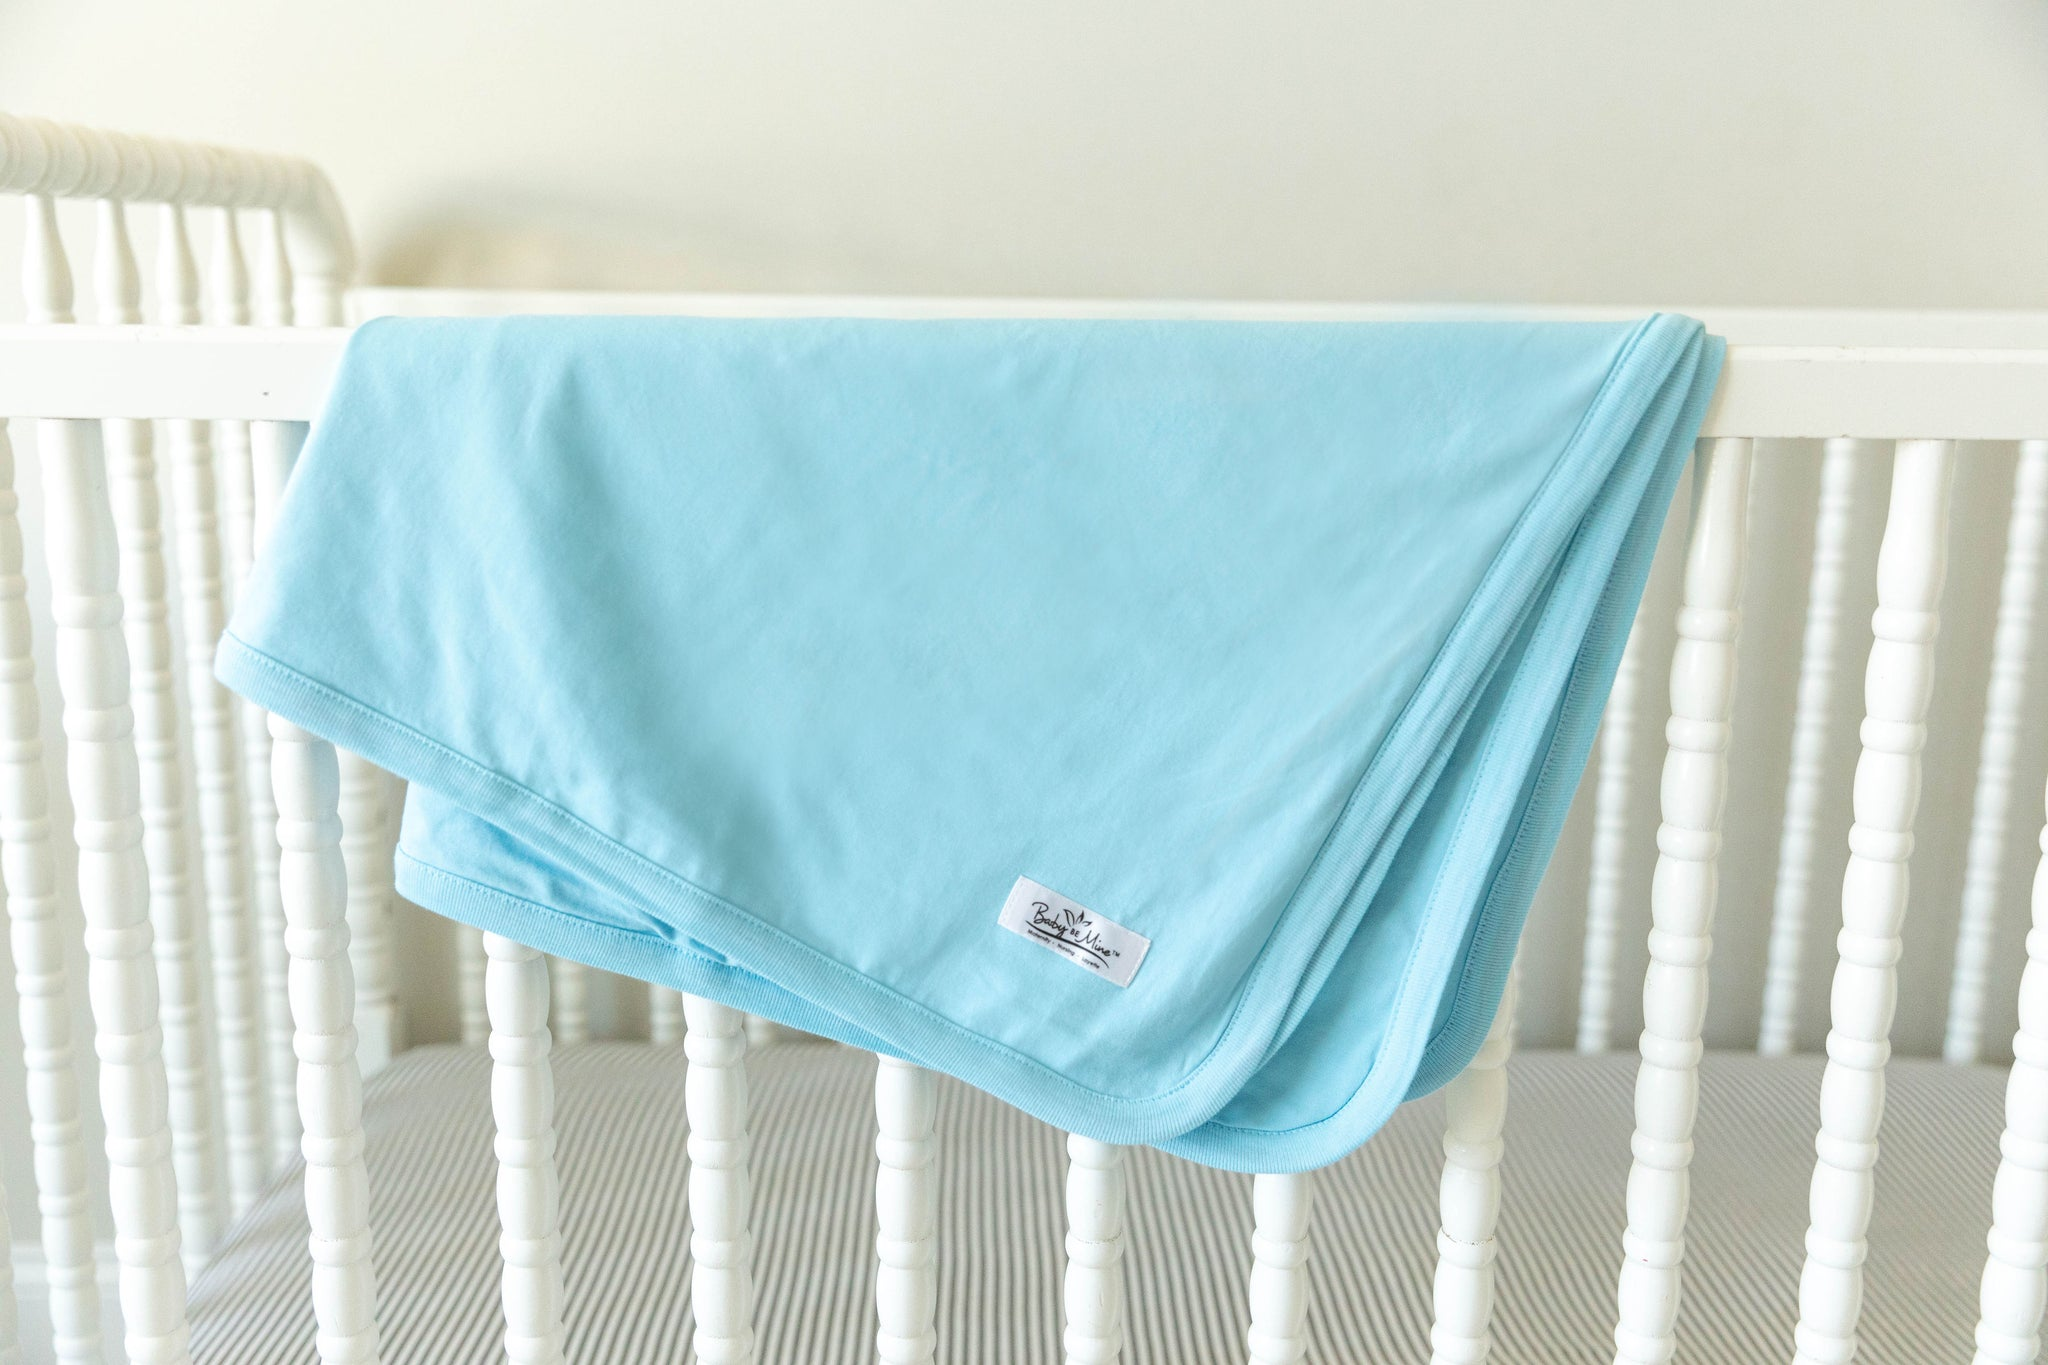 Hadley Robe & Light Blue Baby Swaddle Blanket Set